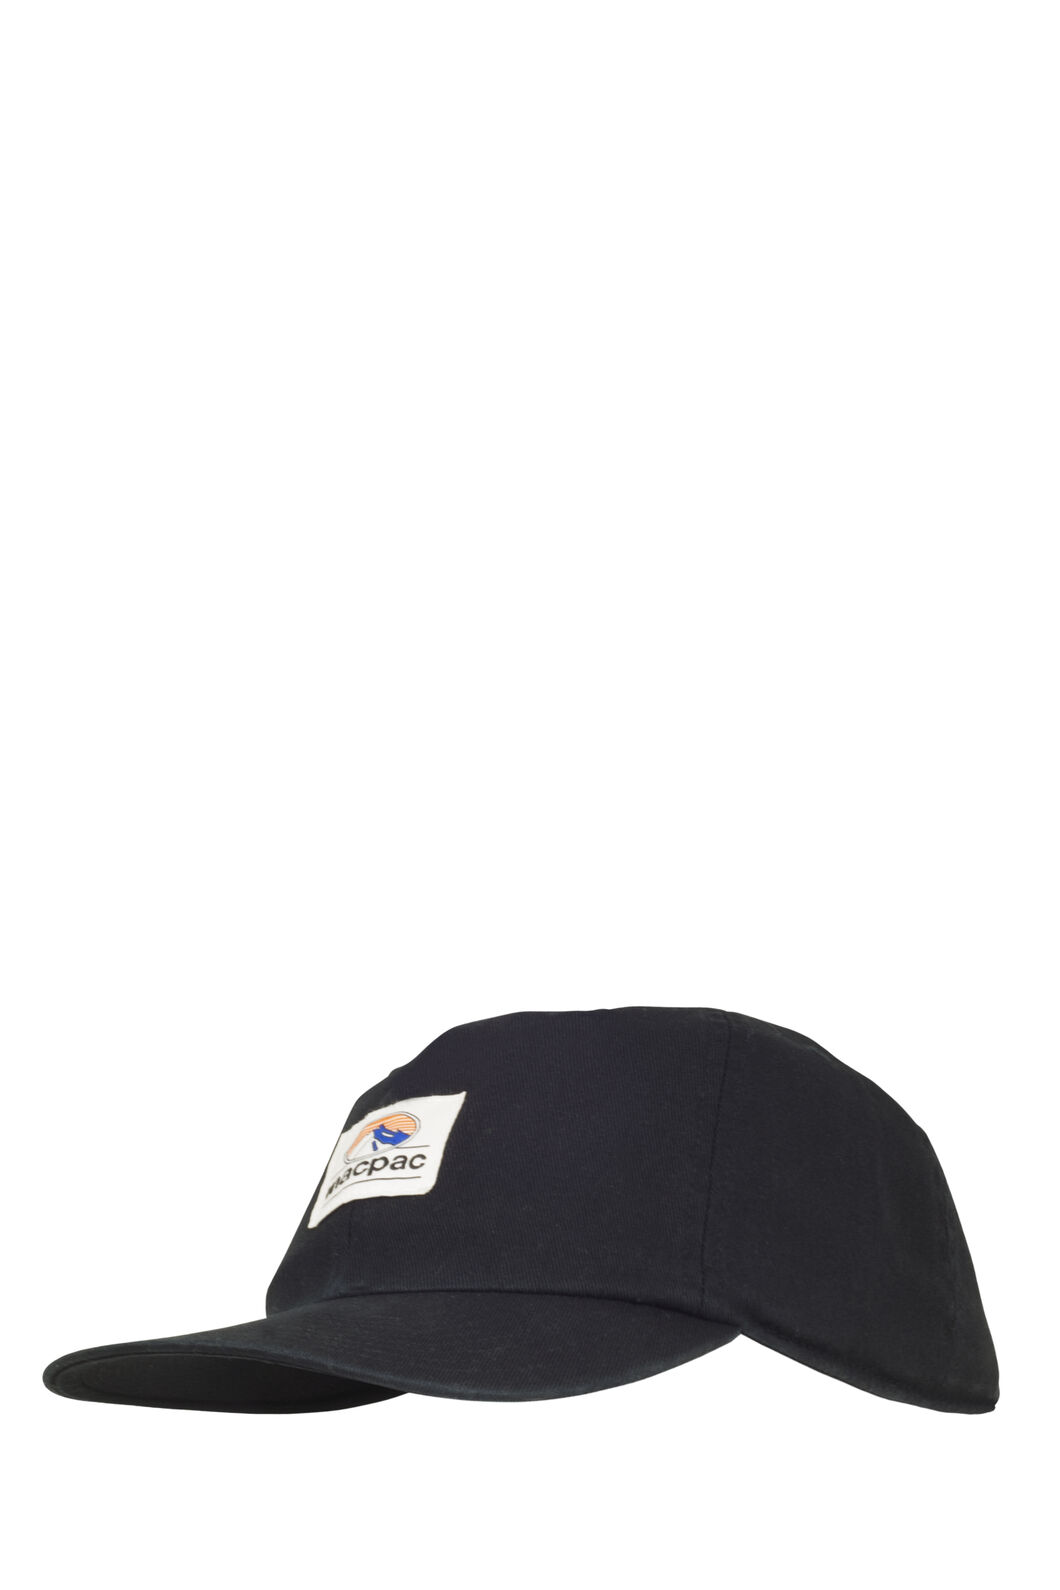 Macpac Vintage Cap, Black Patch, hi-res